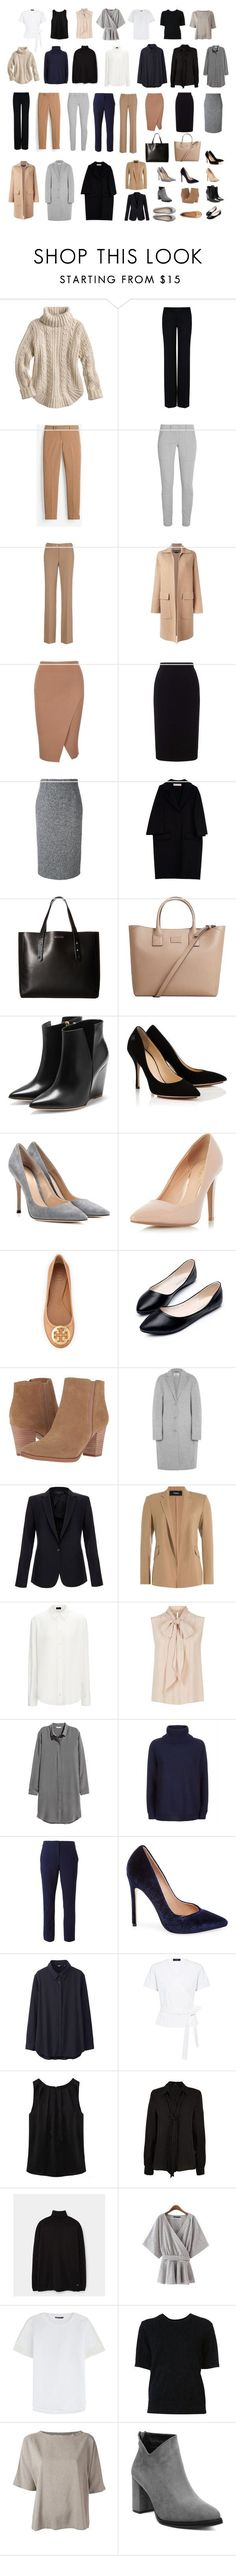 """""""Year-Round Capsule Wardrobe"""" by laurebrenn on Polyvore featuring STELLA McCARTNEY, White House Black Market, DKNY, Rochas, Roland Mouret, RED Valentino, Marni, Kenneth Cole Reaction, MANGO and Rupert Sanderson"""